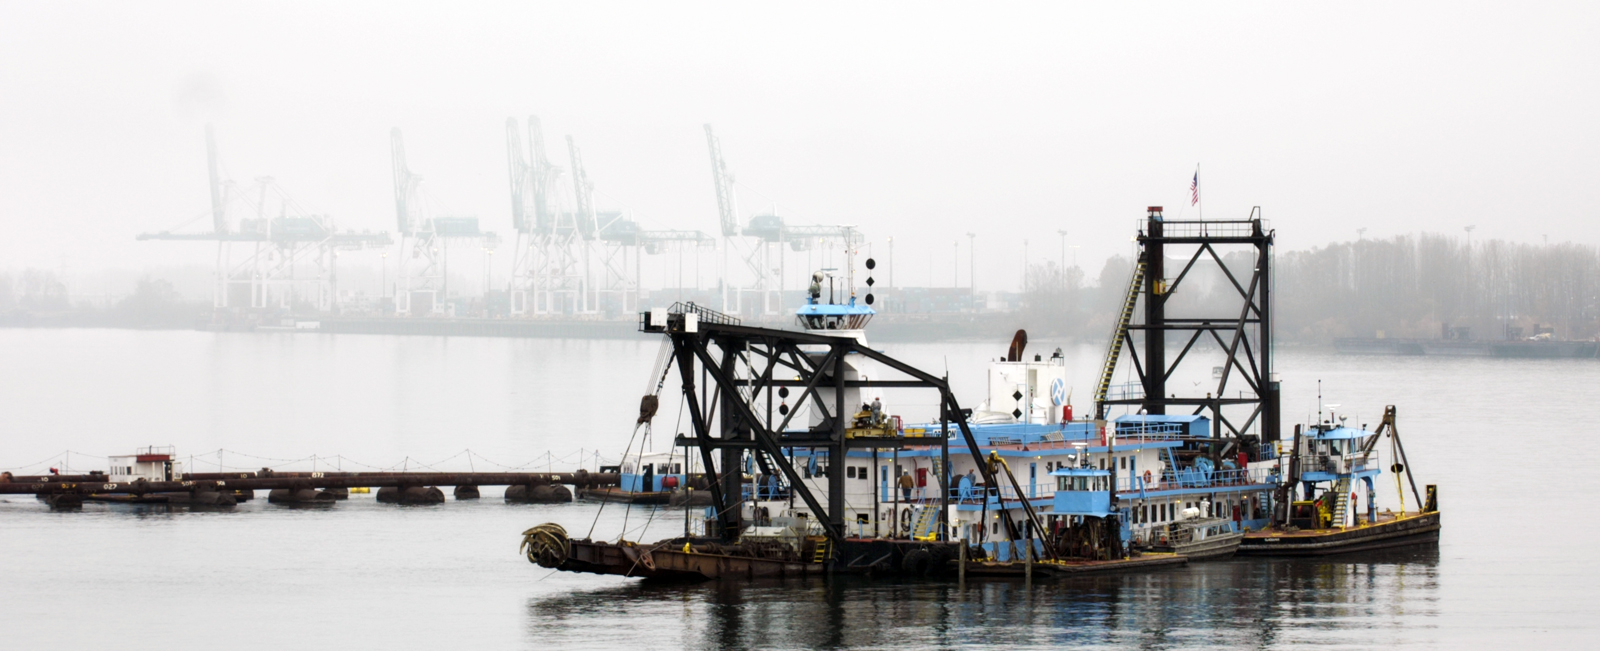 Dredge Oregon Underway for 2016 Season